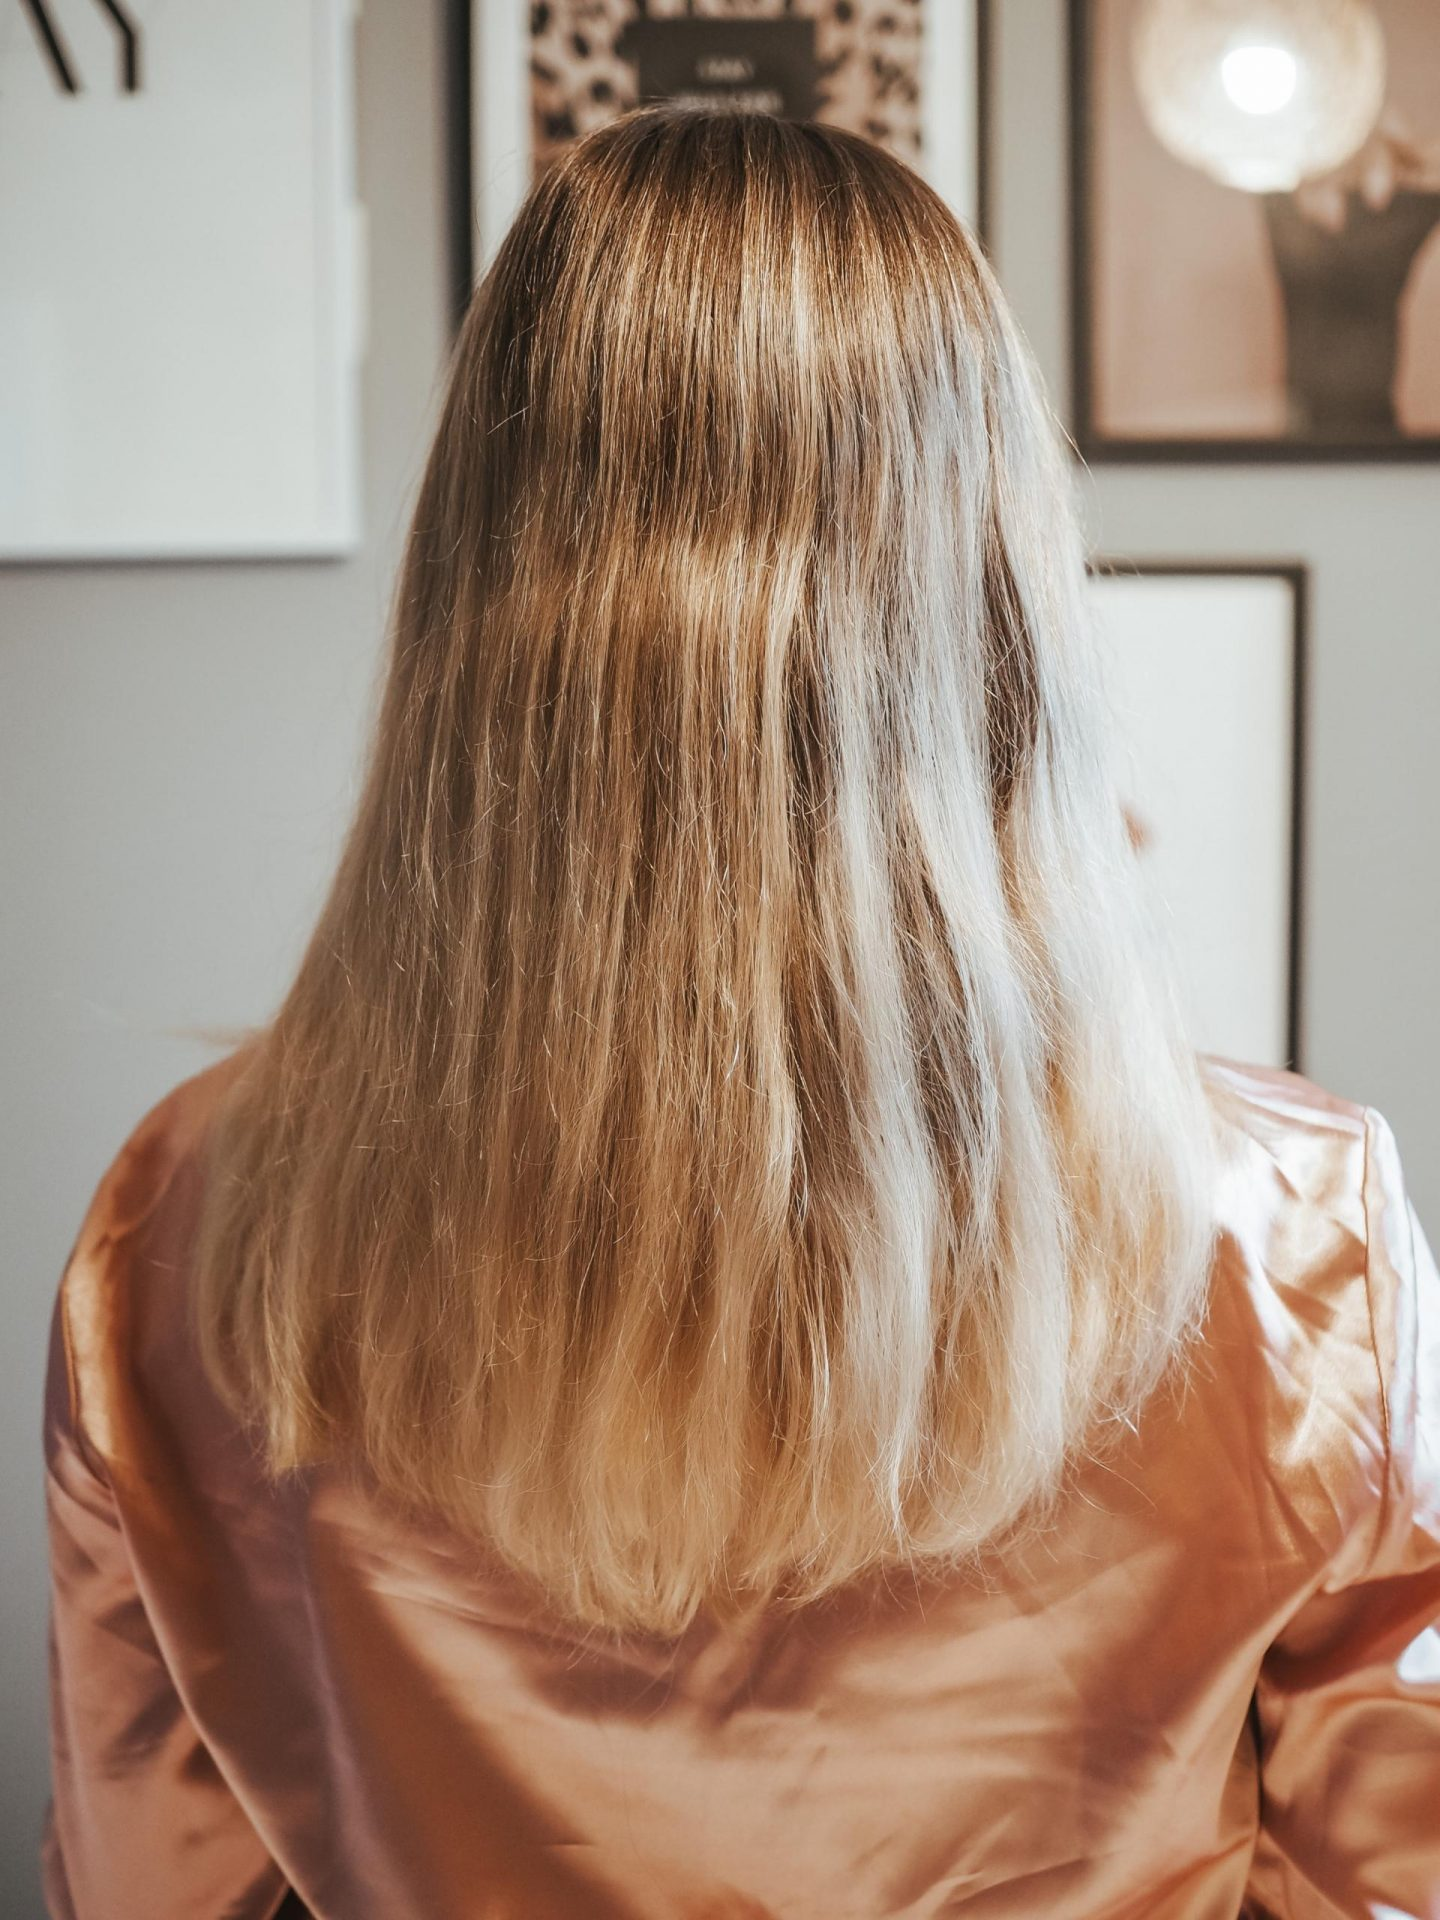 How to Maintain Your Hair Extensions At Home